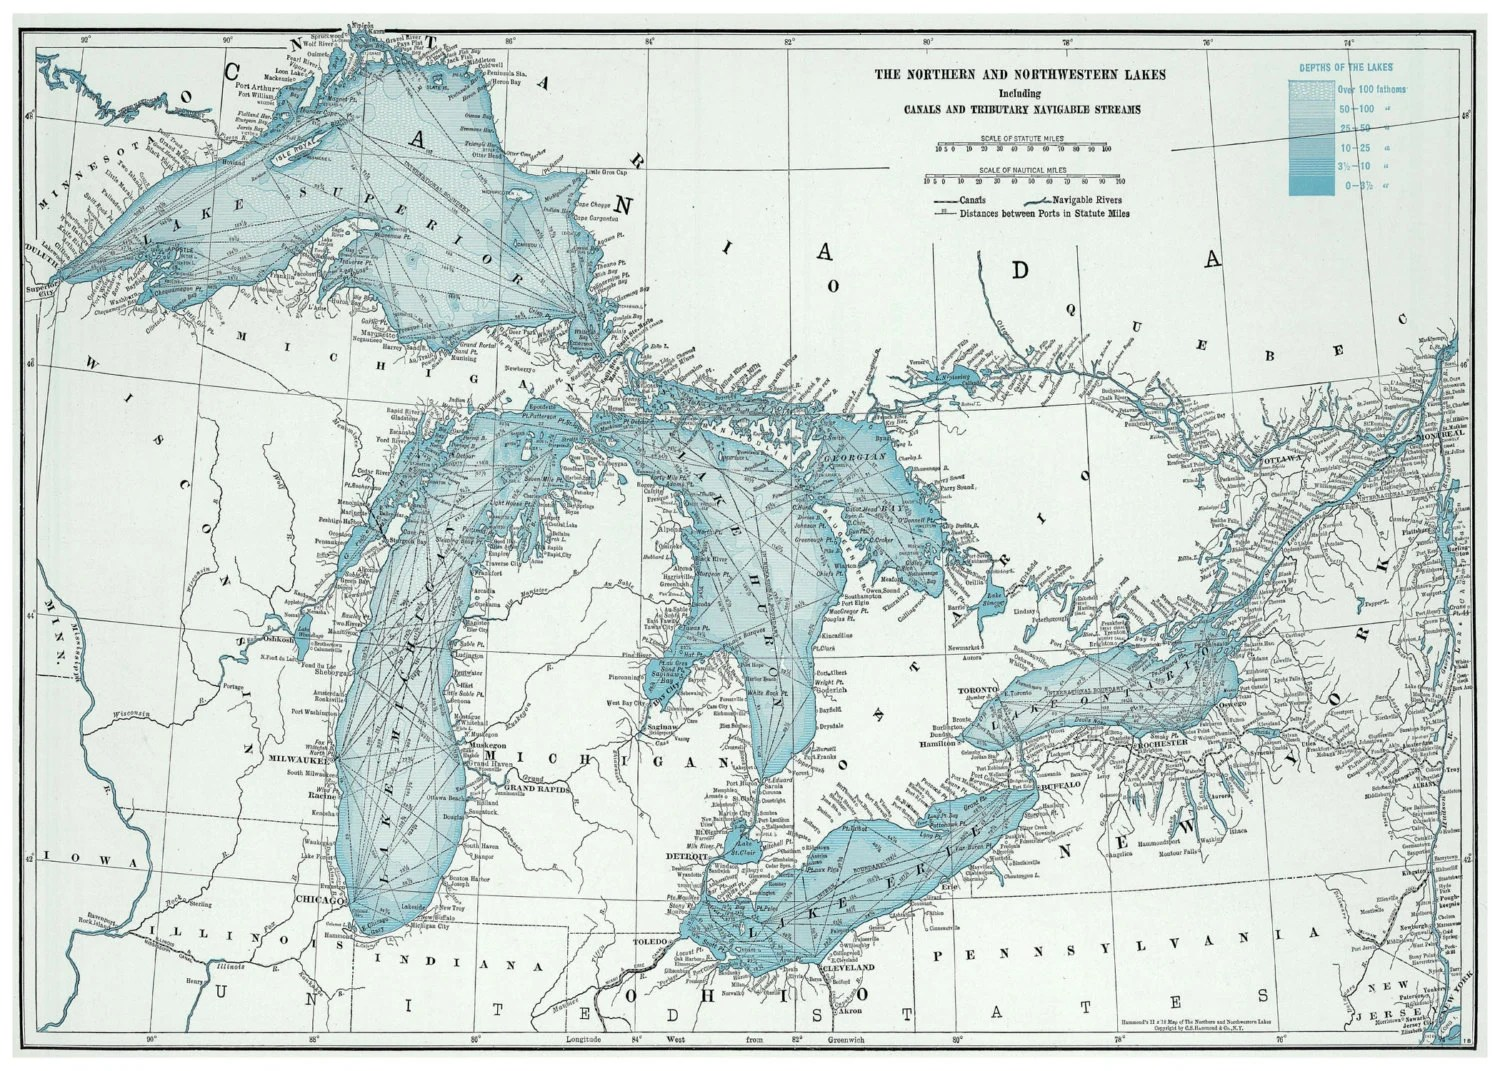 Great Lakes Map Poster Print By Themapshop On Etsy